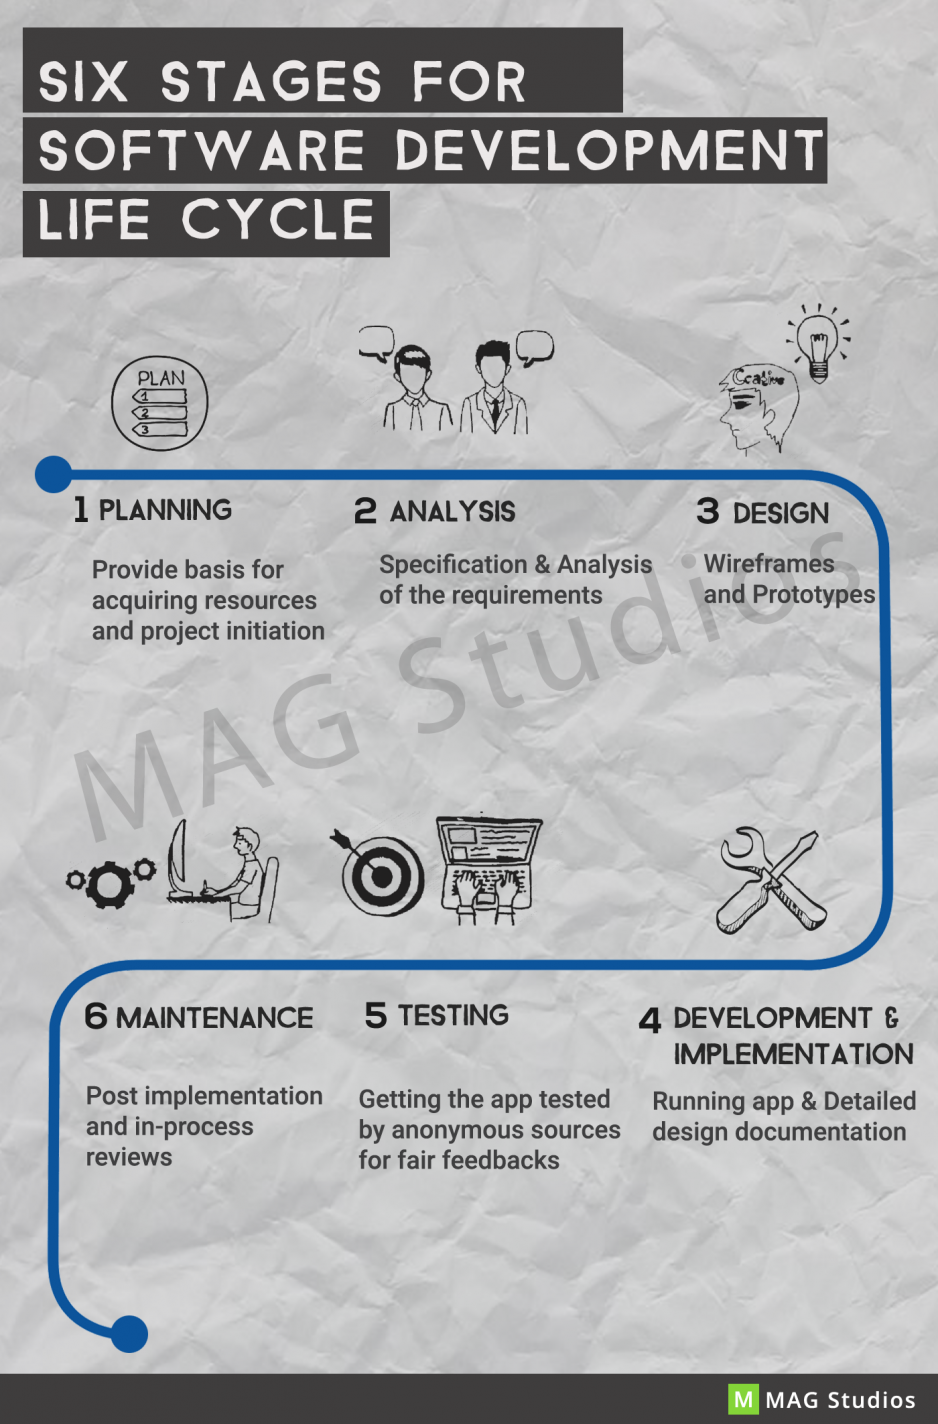 Six stages of Software Development Life Cycle